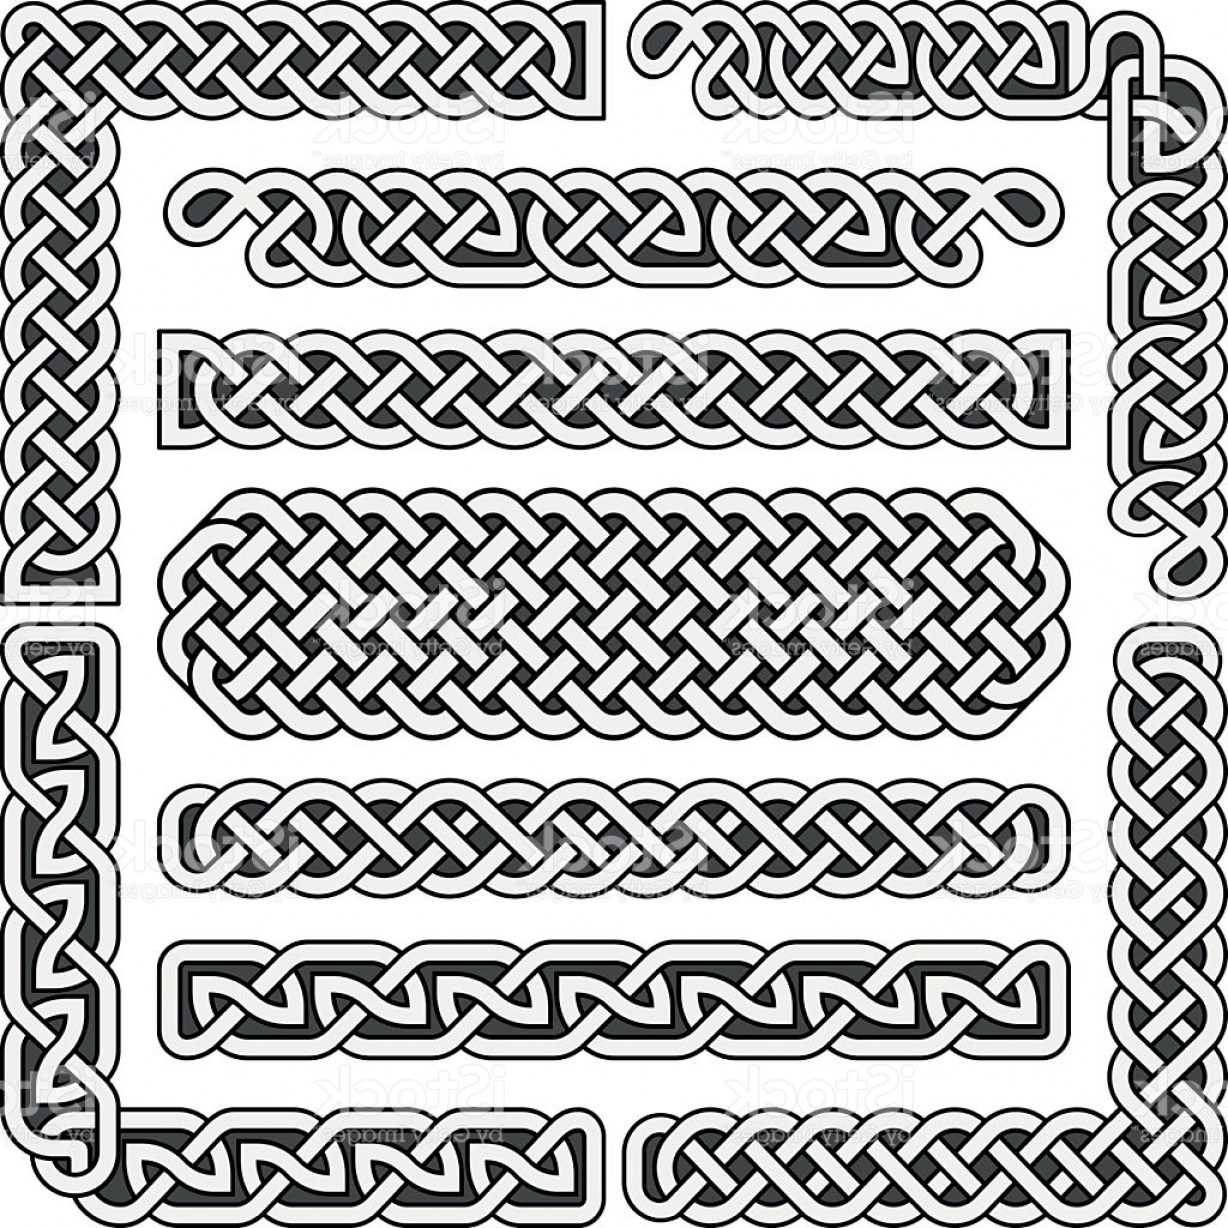 1228x1228 Celtic Knots Vector Medieval Seamless Borders Patterns And